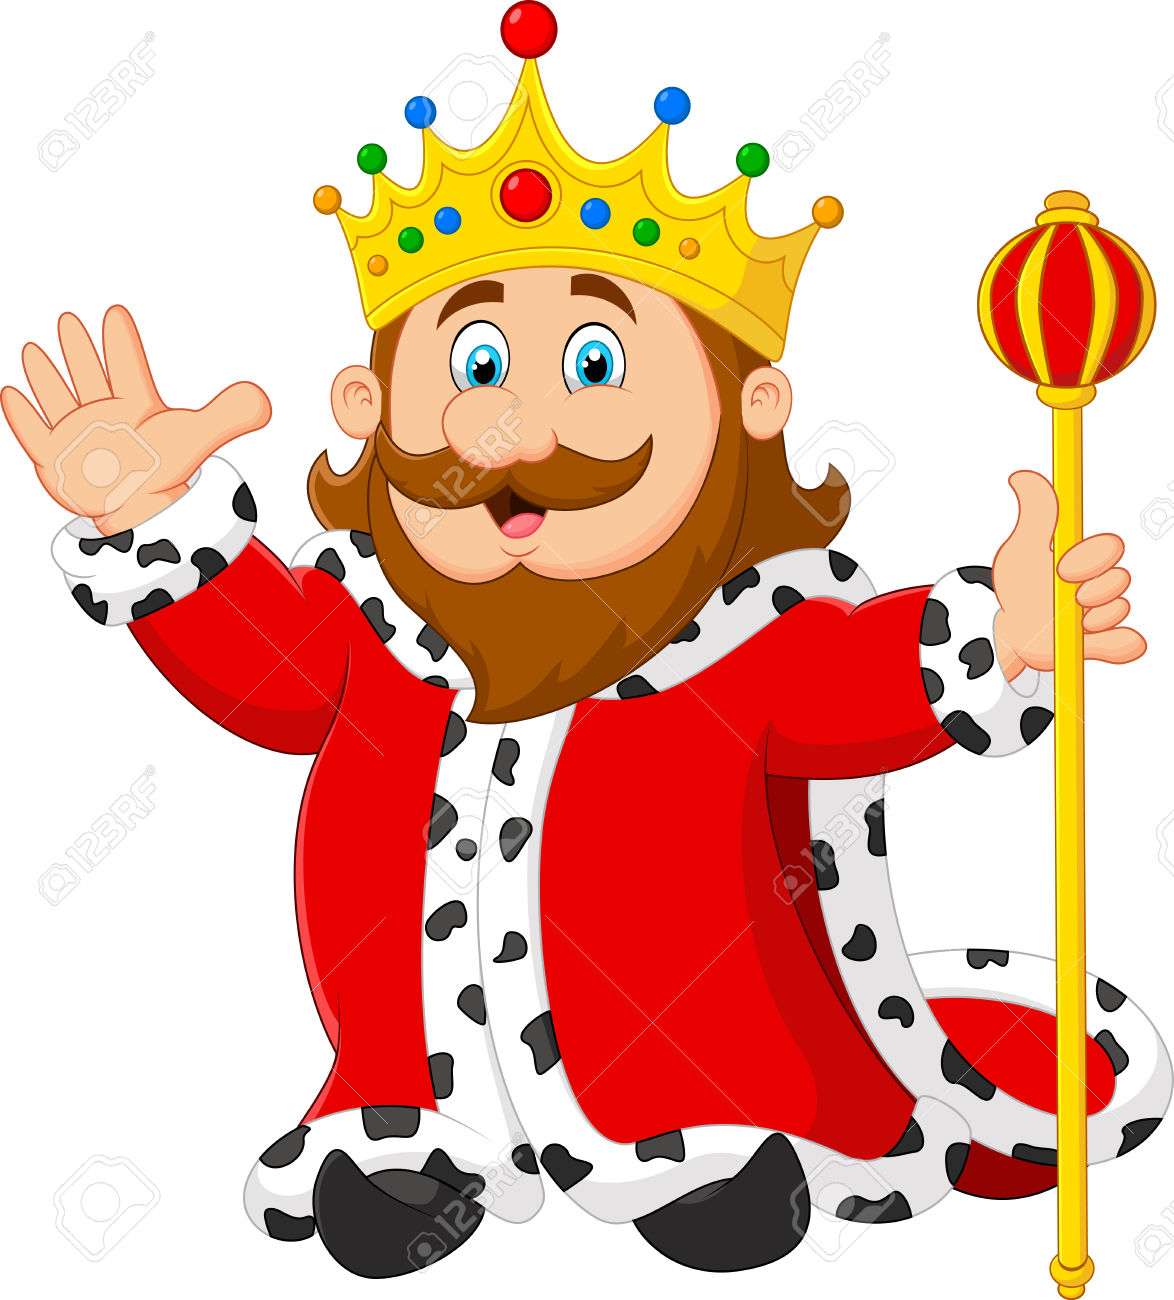 hight resolution of 1174x1300 king clipart suggestions for king clipart download king clipart